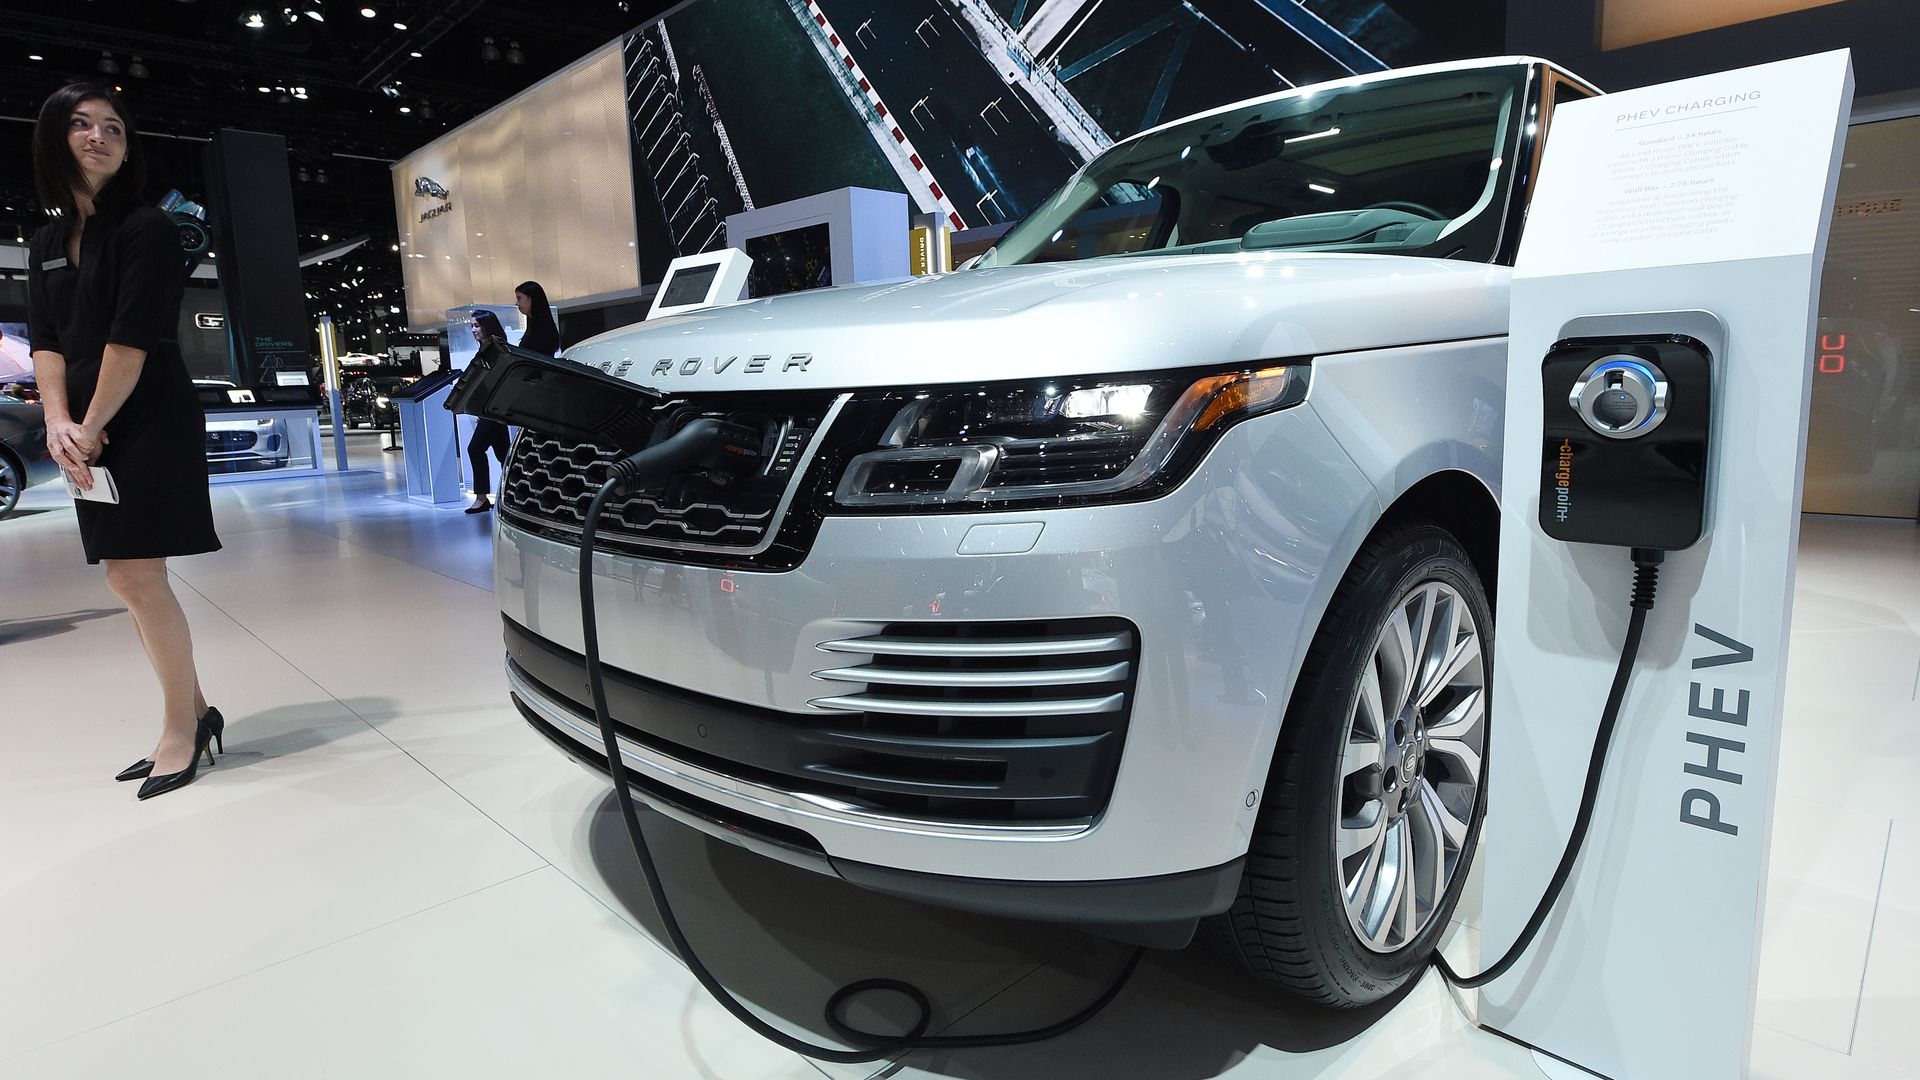 Hybrid Range Rover model and charging station at car show